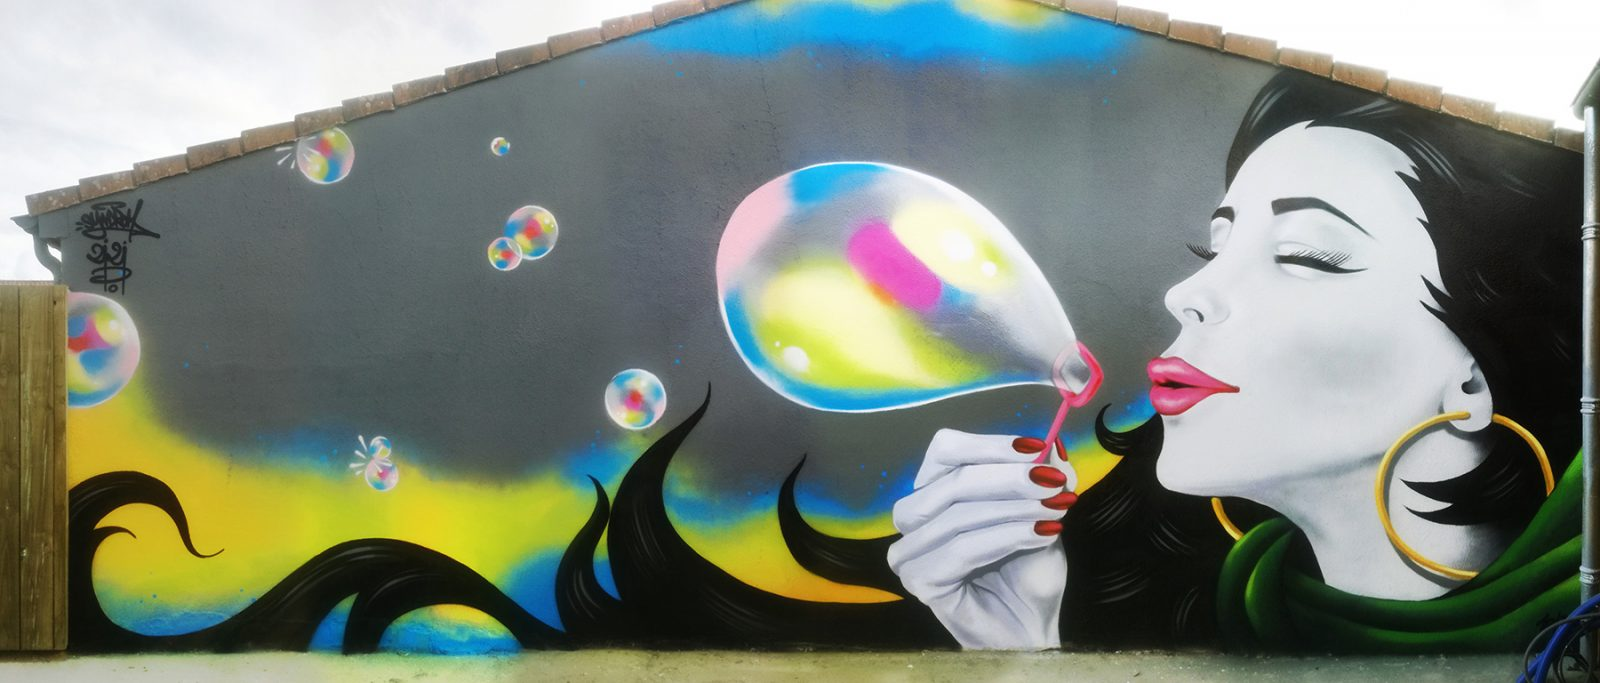 fresque-graffiti-streetart-deco